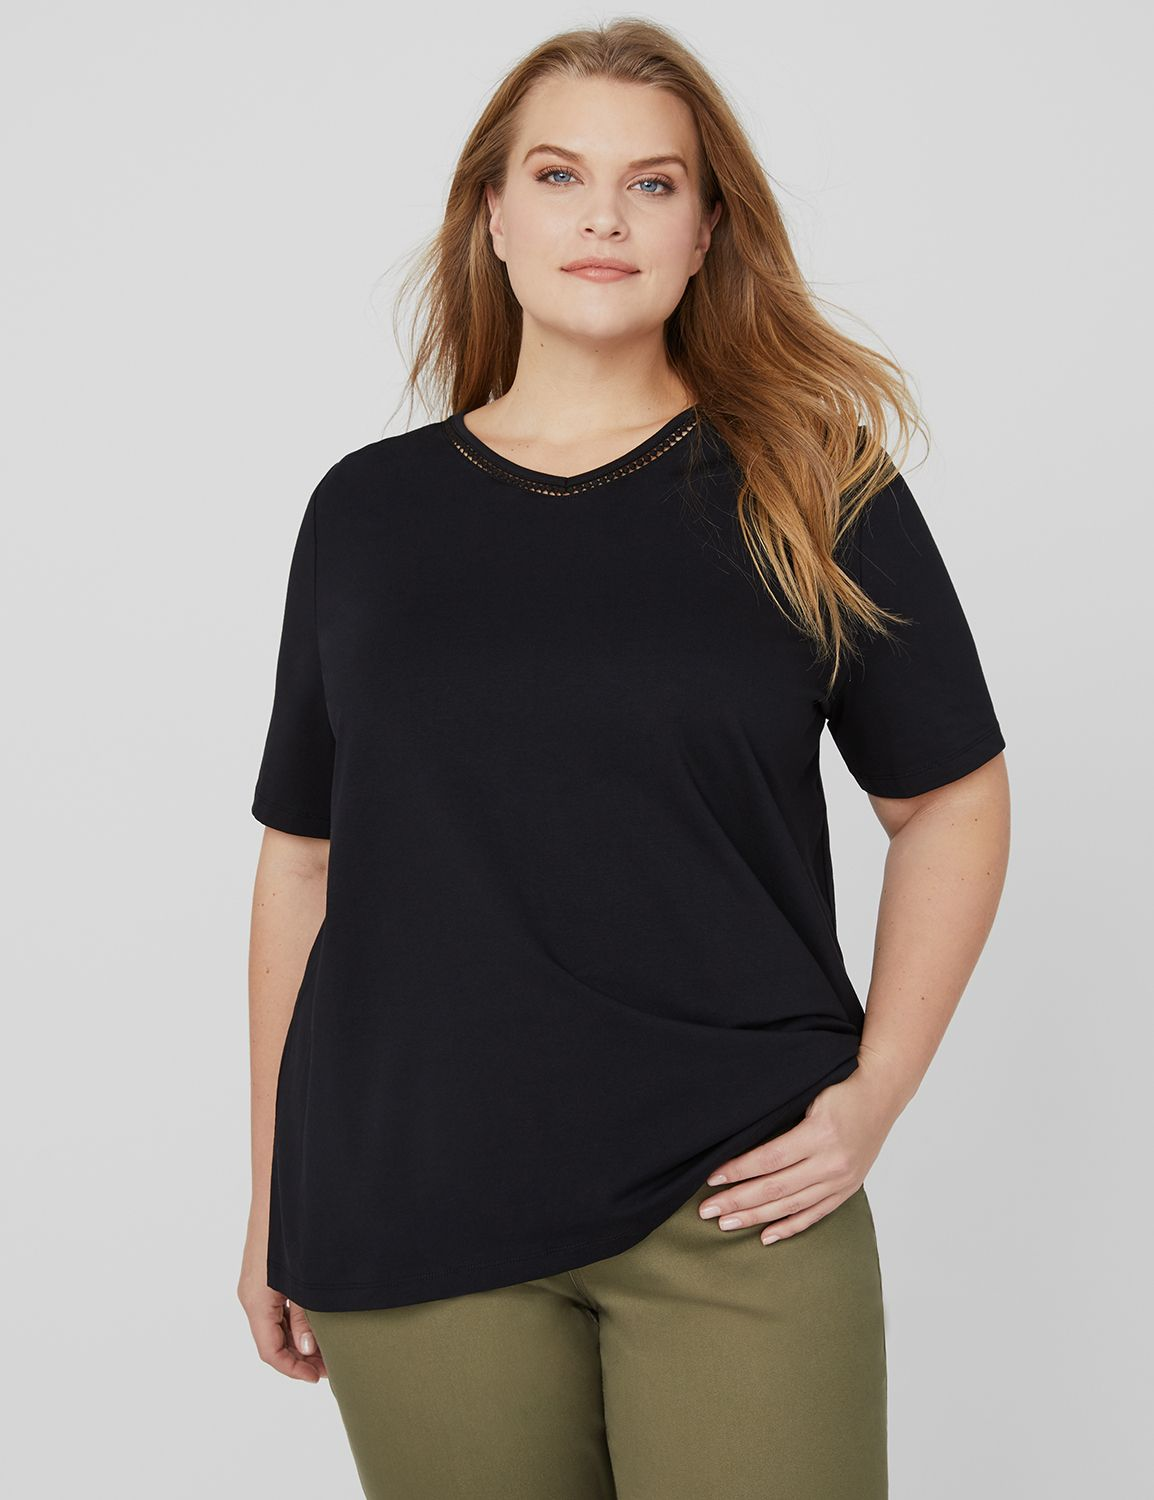 Suprema Lavish Tee 1087747 SS Basic Vneck with trim- S MP-300101141